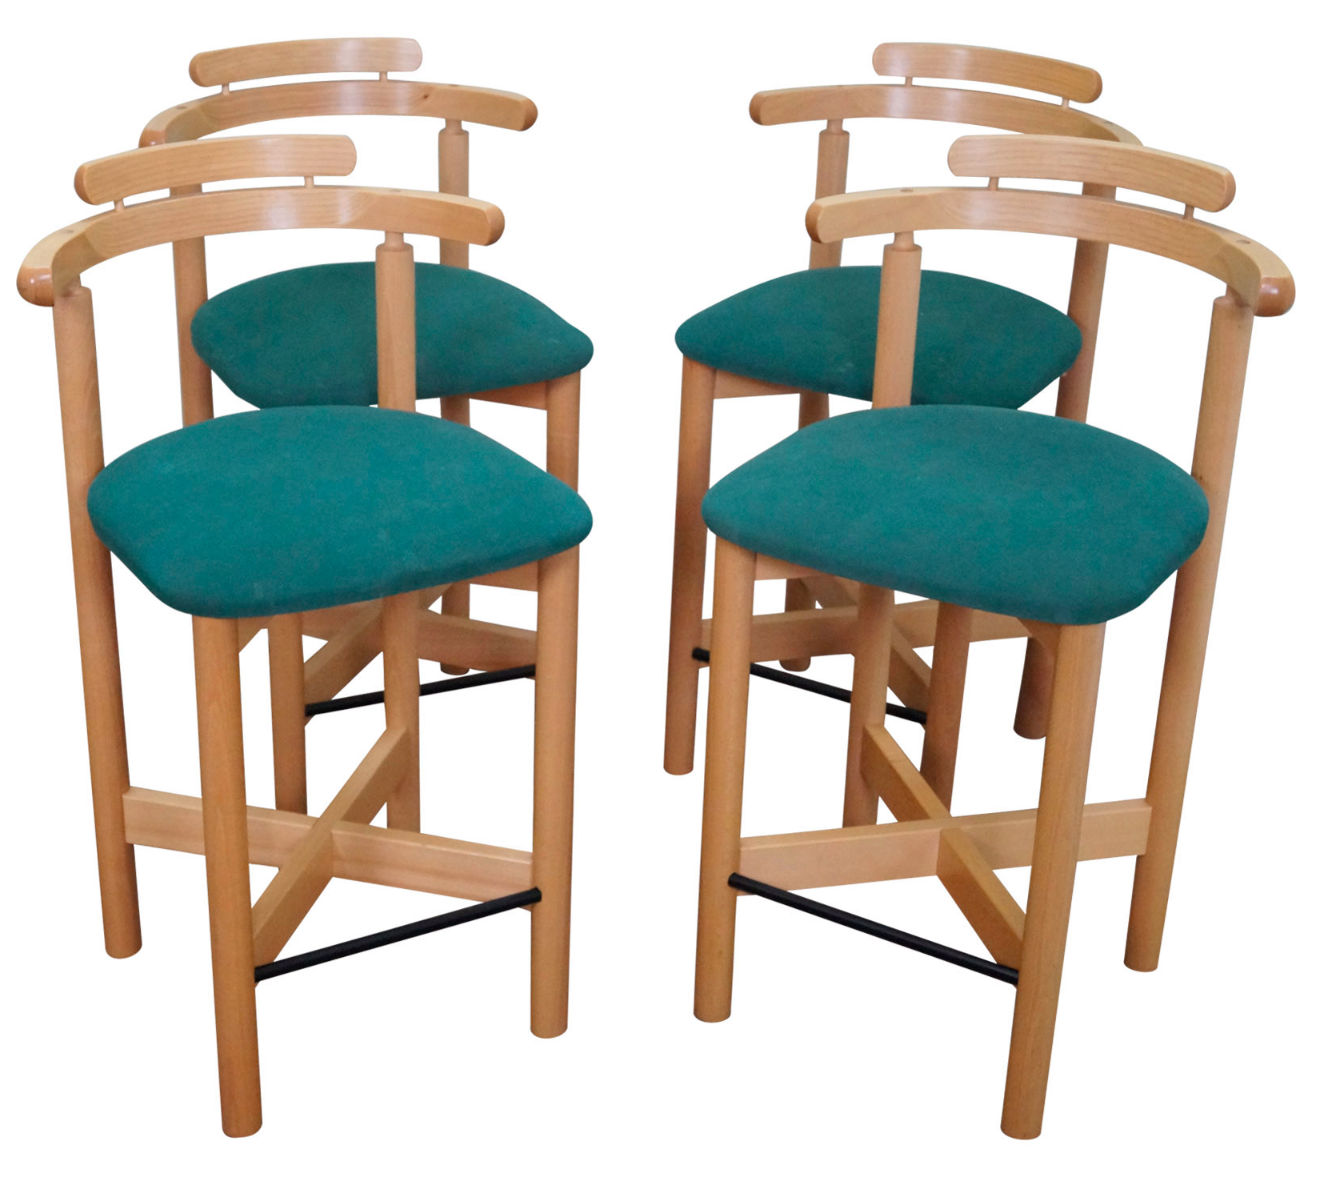 100 teal bar stools kitchen progress side shell stools from